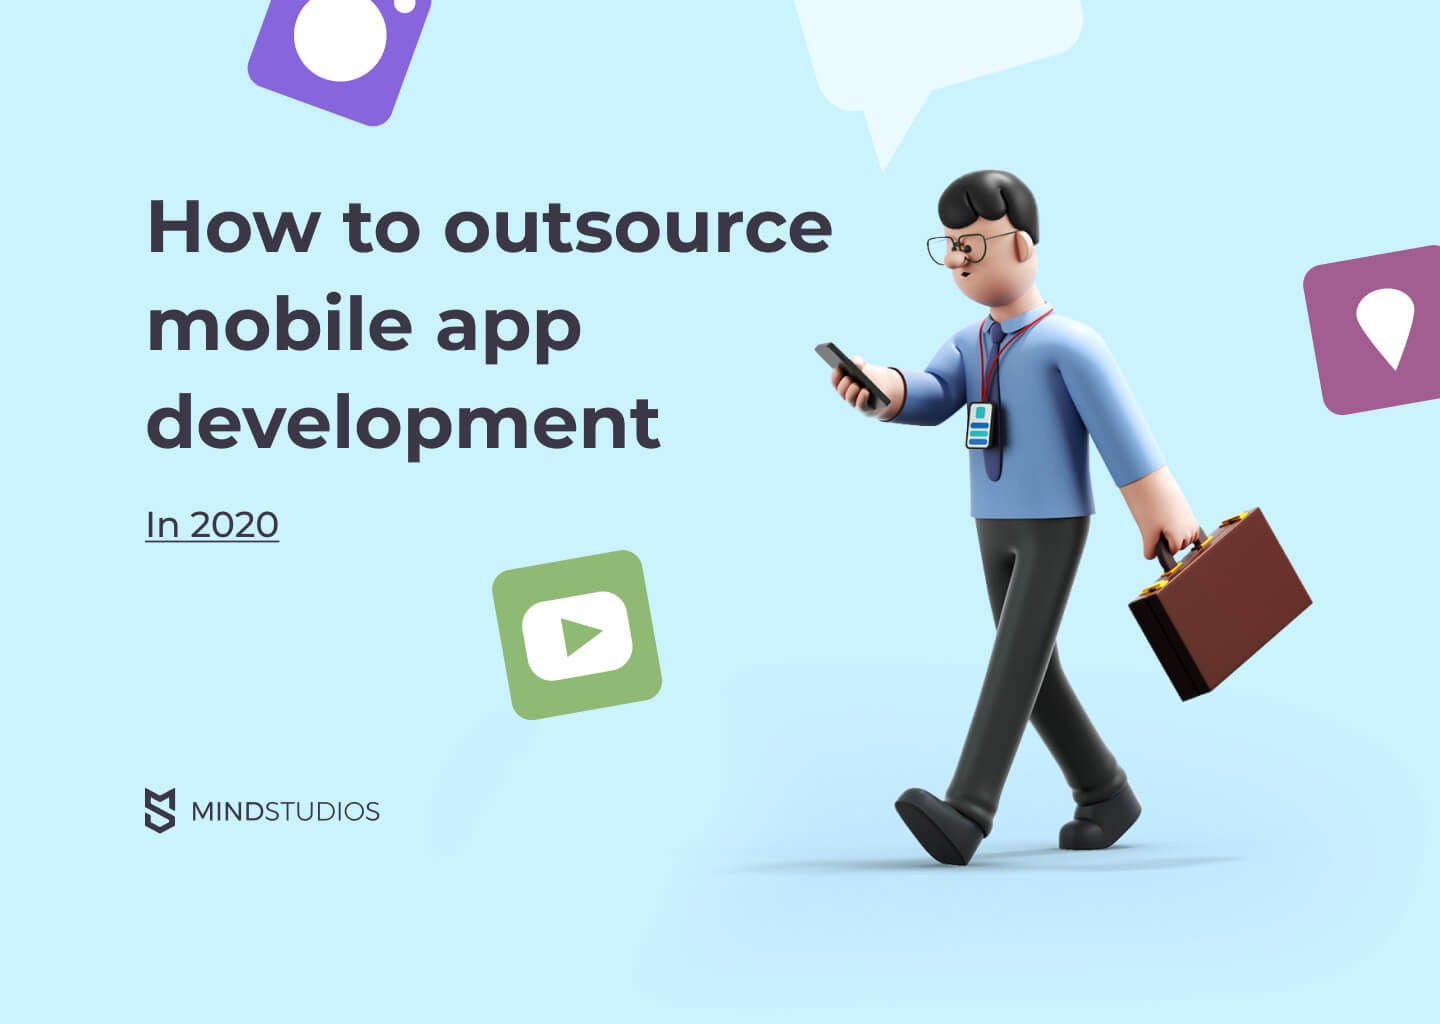 How to Outsource Mobile App Development in 2020